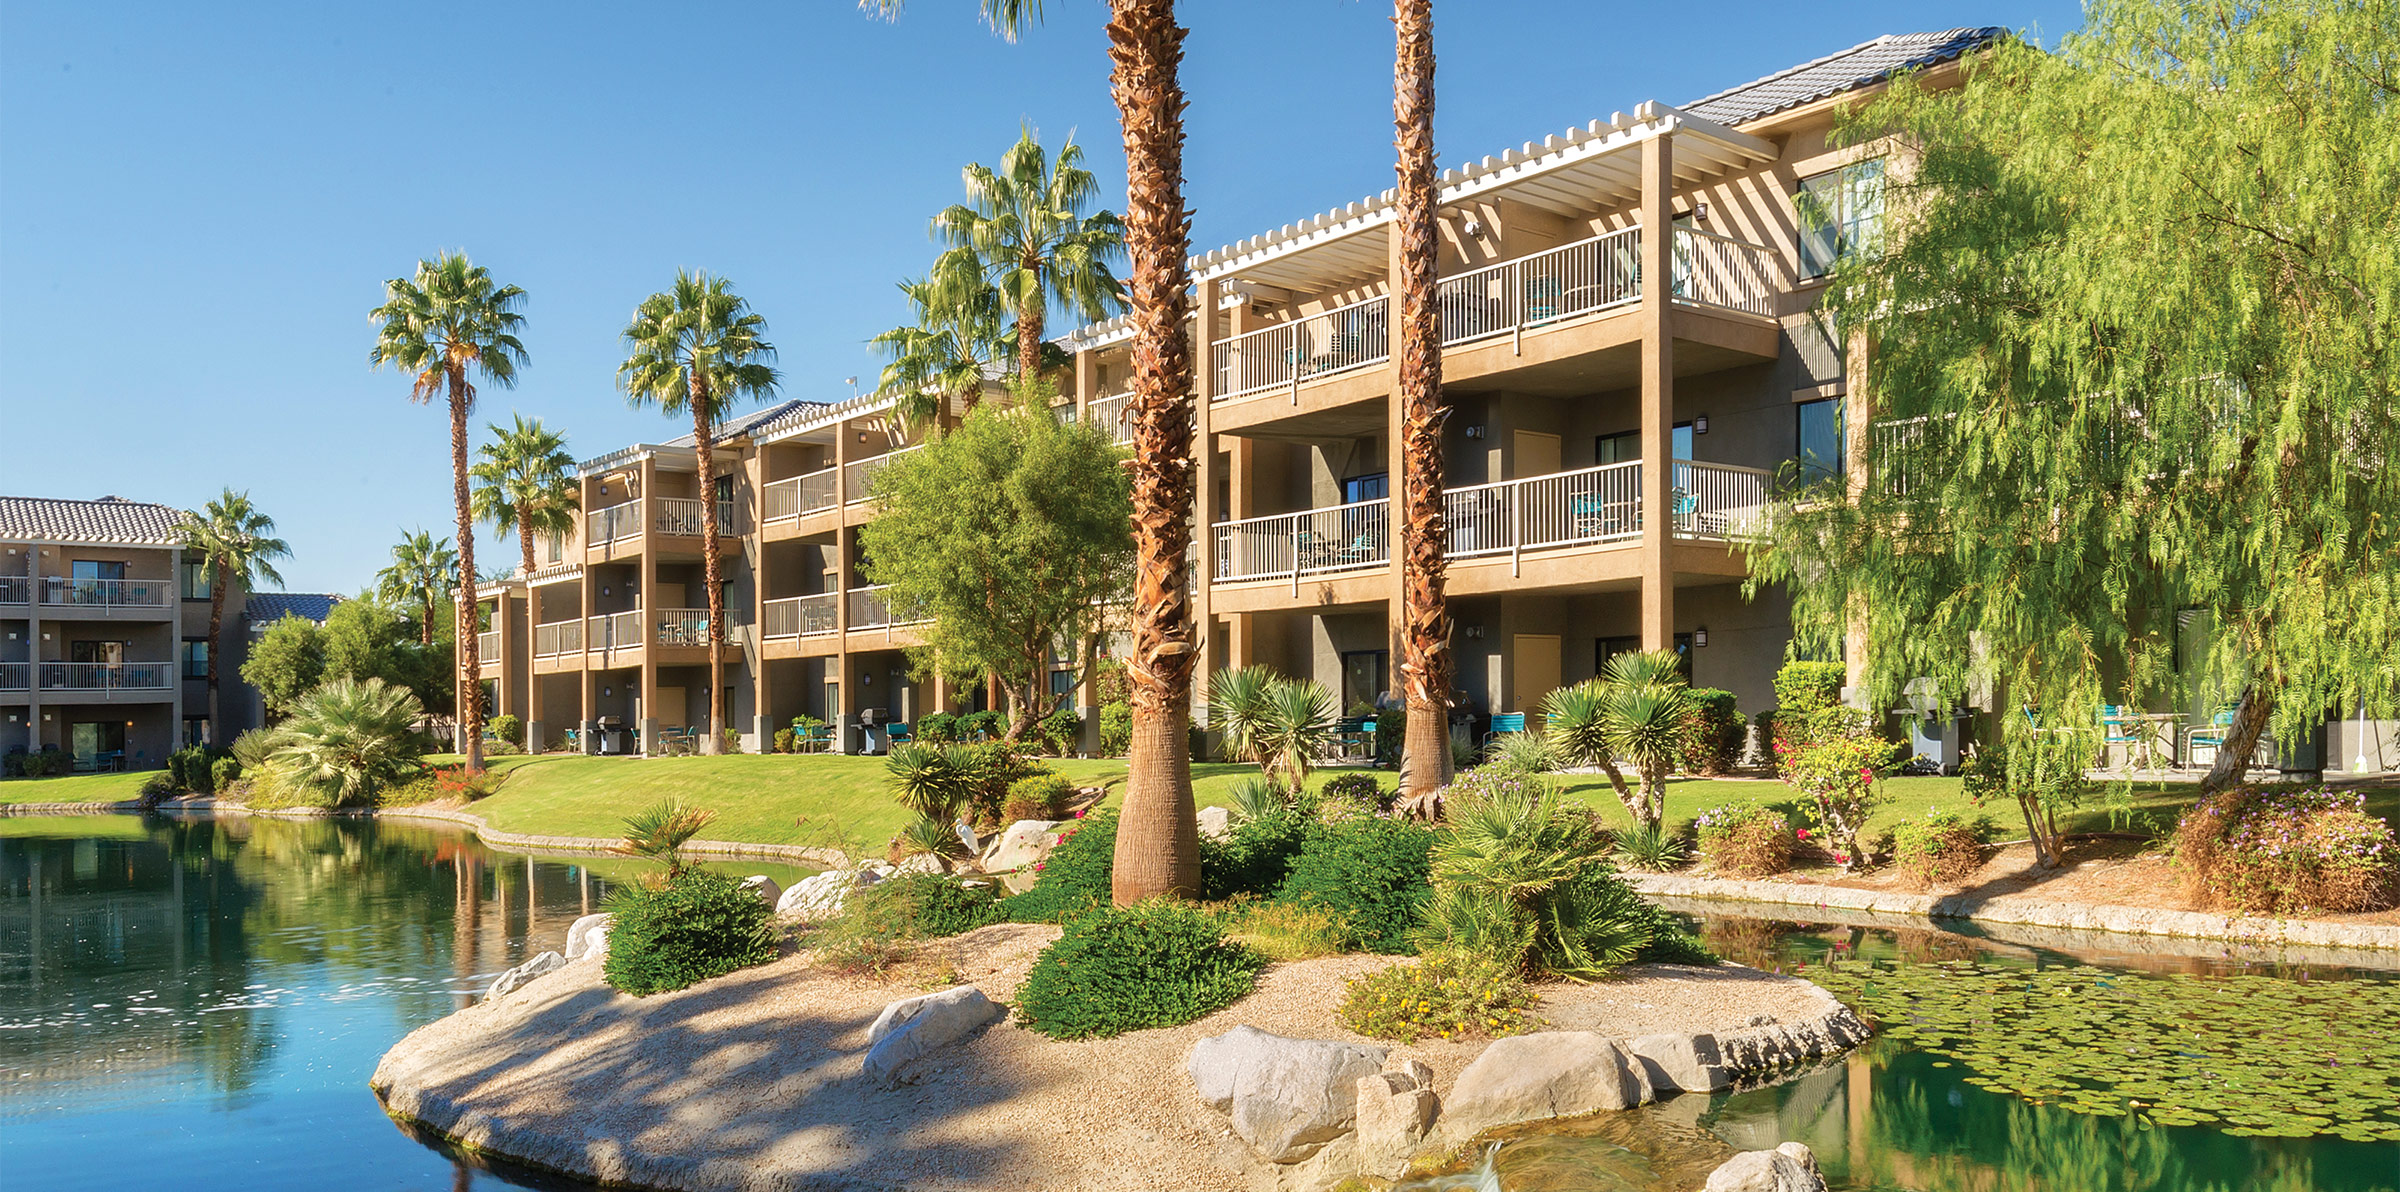 Apartment 2 Bedroom 2 Bath In Indio  CA   Palm Springs  5 miles from COACHELLA photo 18634354